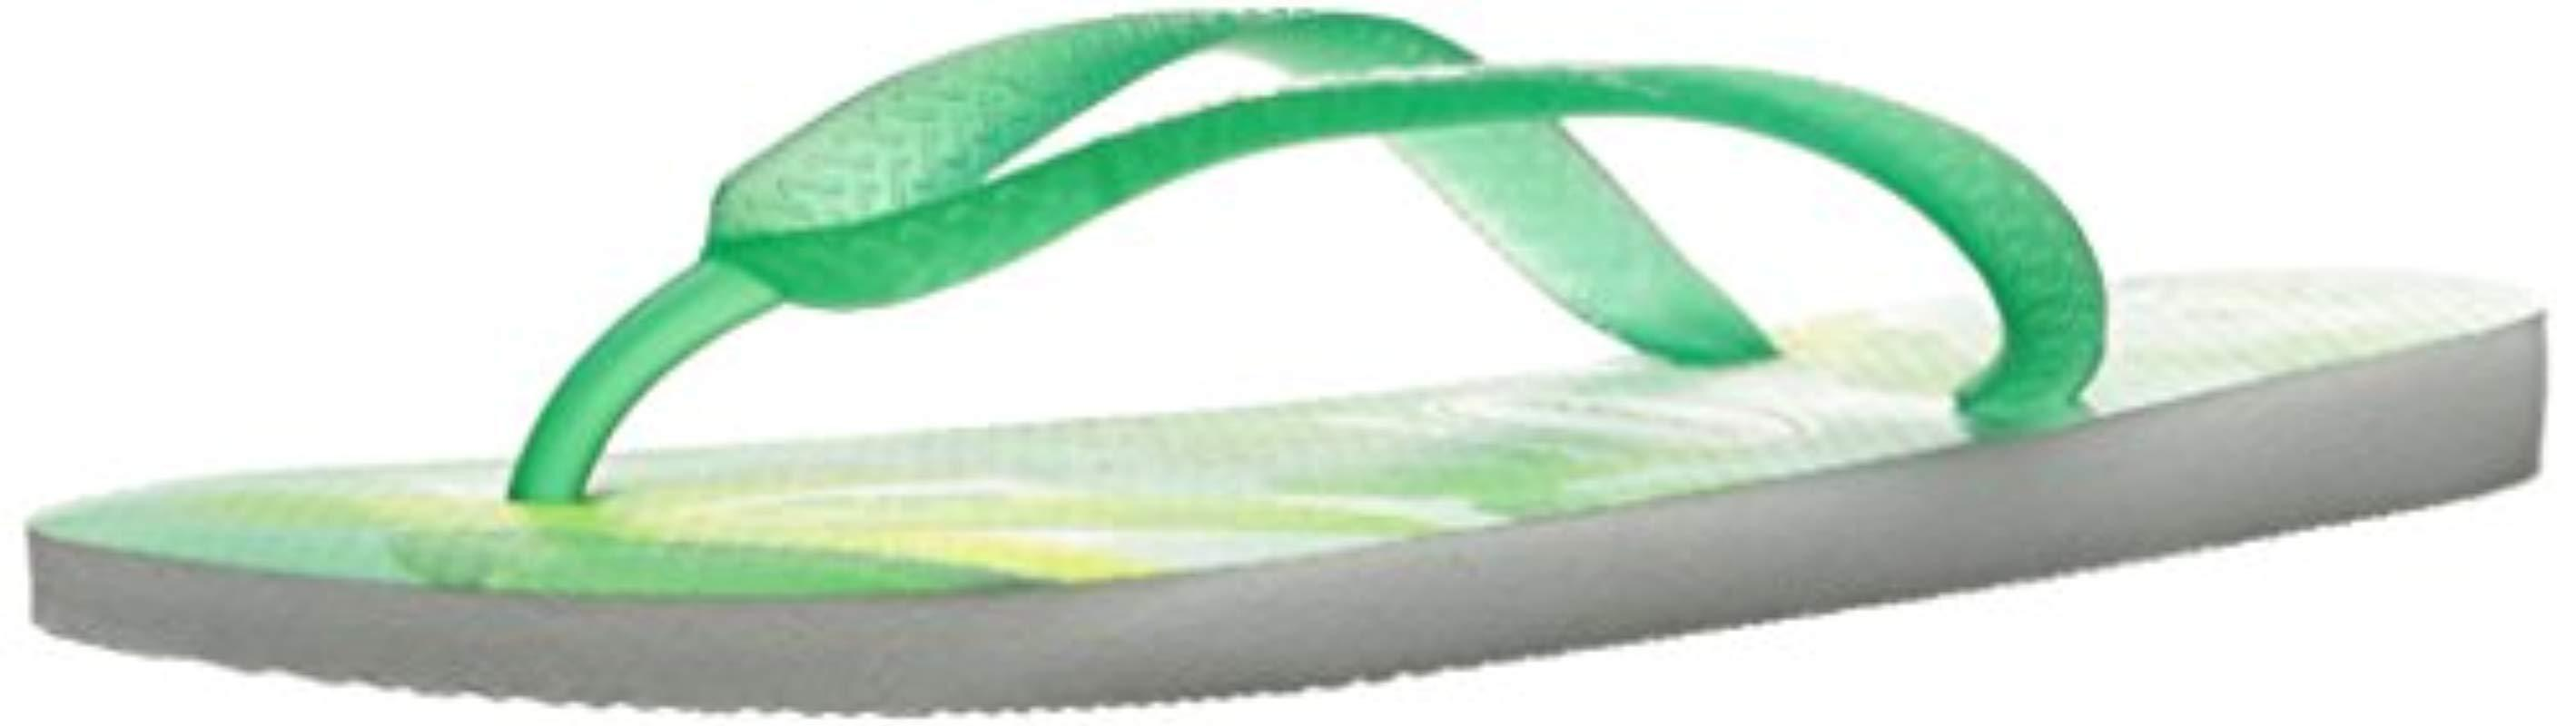 4e6679d56 Havaianas. Men s Green Flip Flop Sandals ...